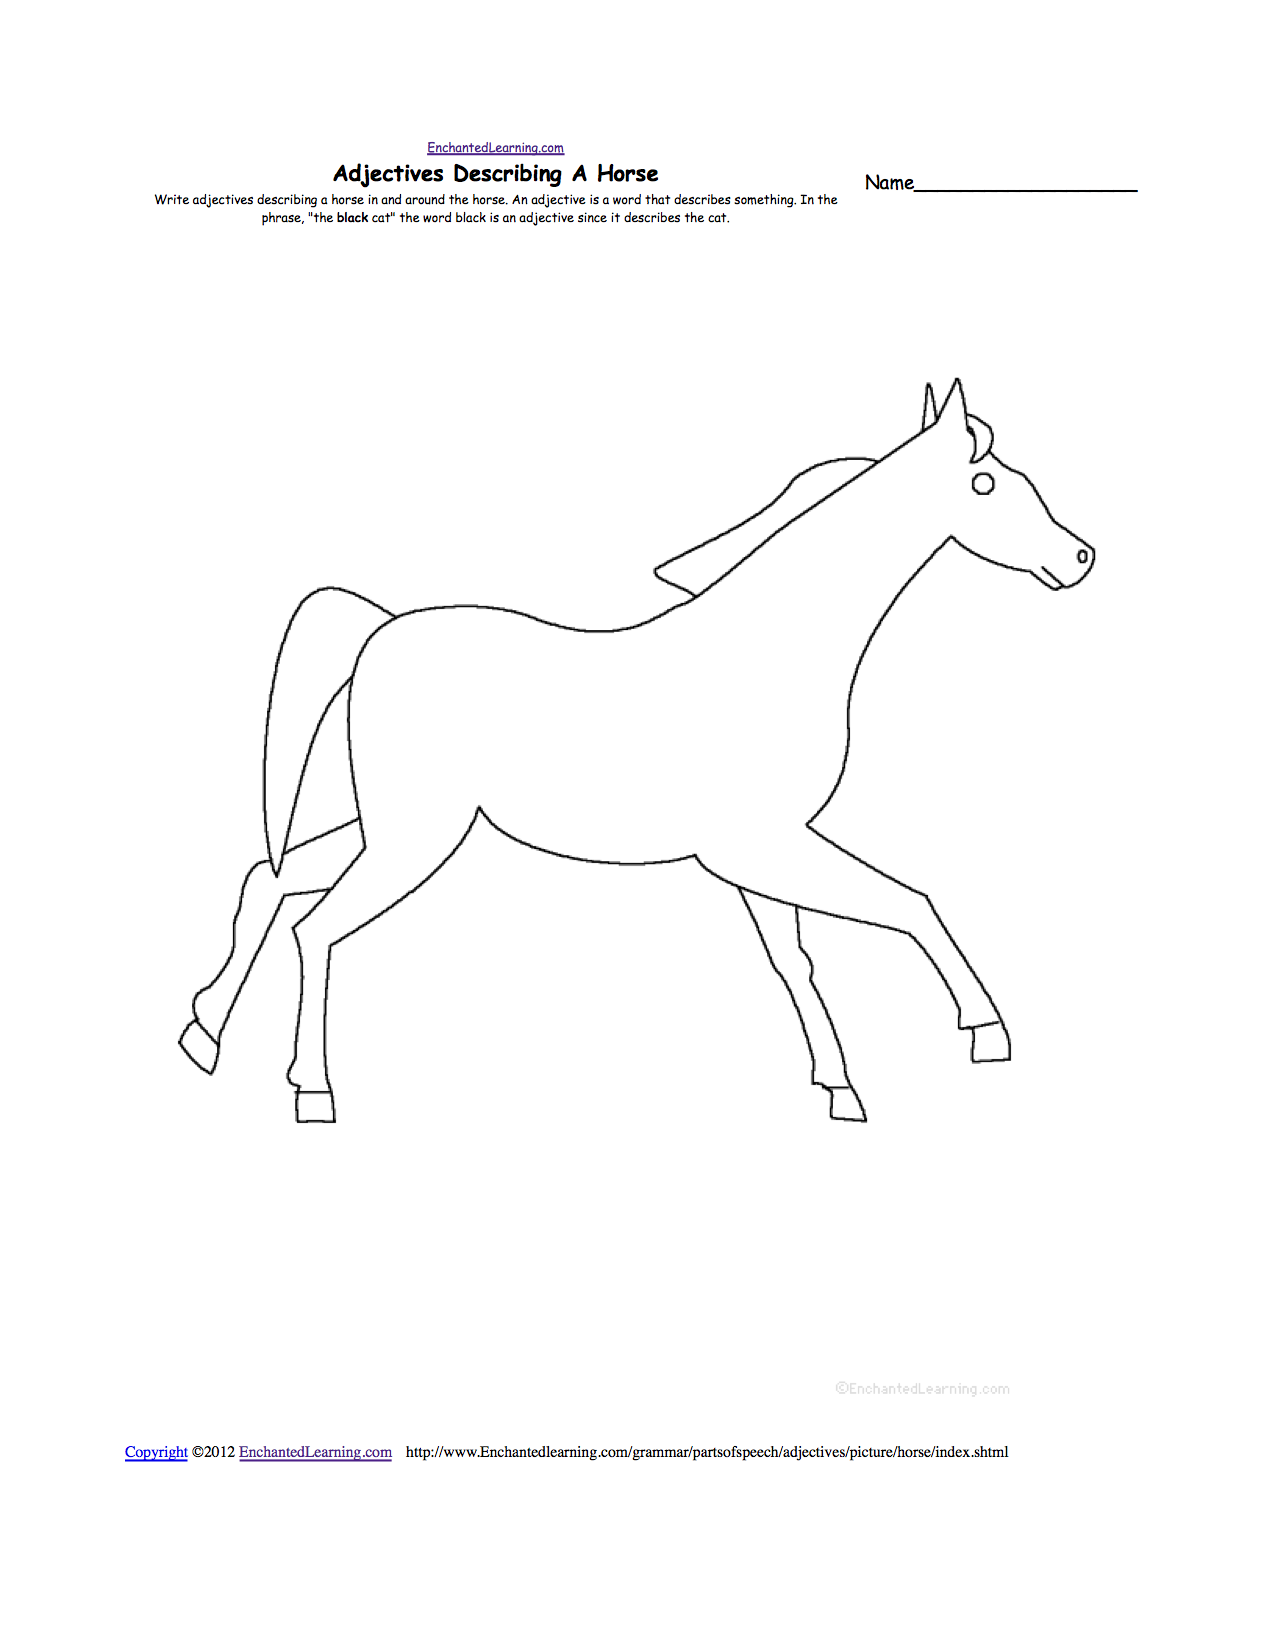 worksheet Horse Anatomy Worksheet horses at enchantedlearning com horse